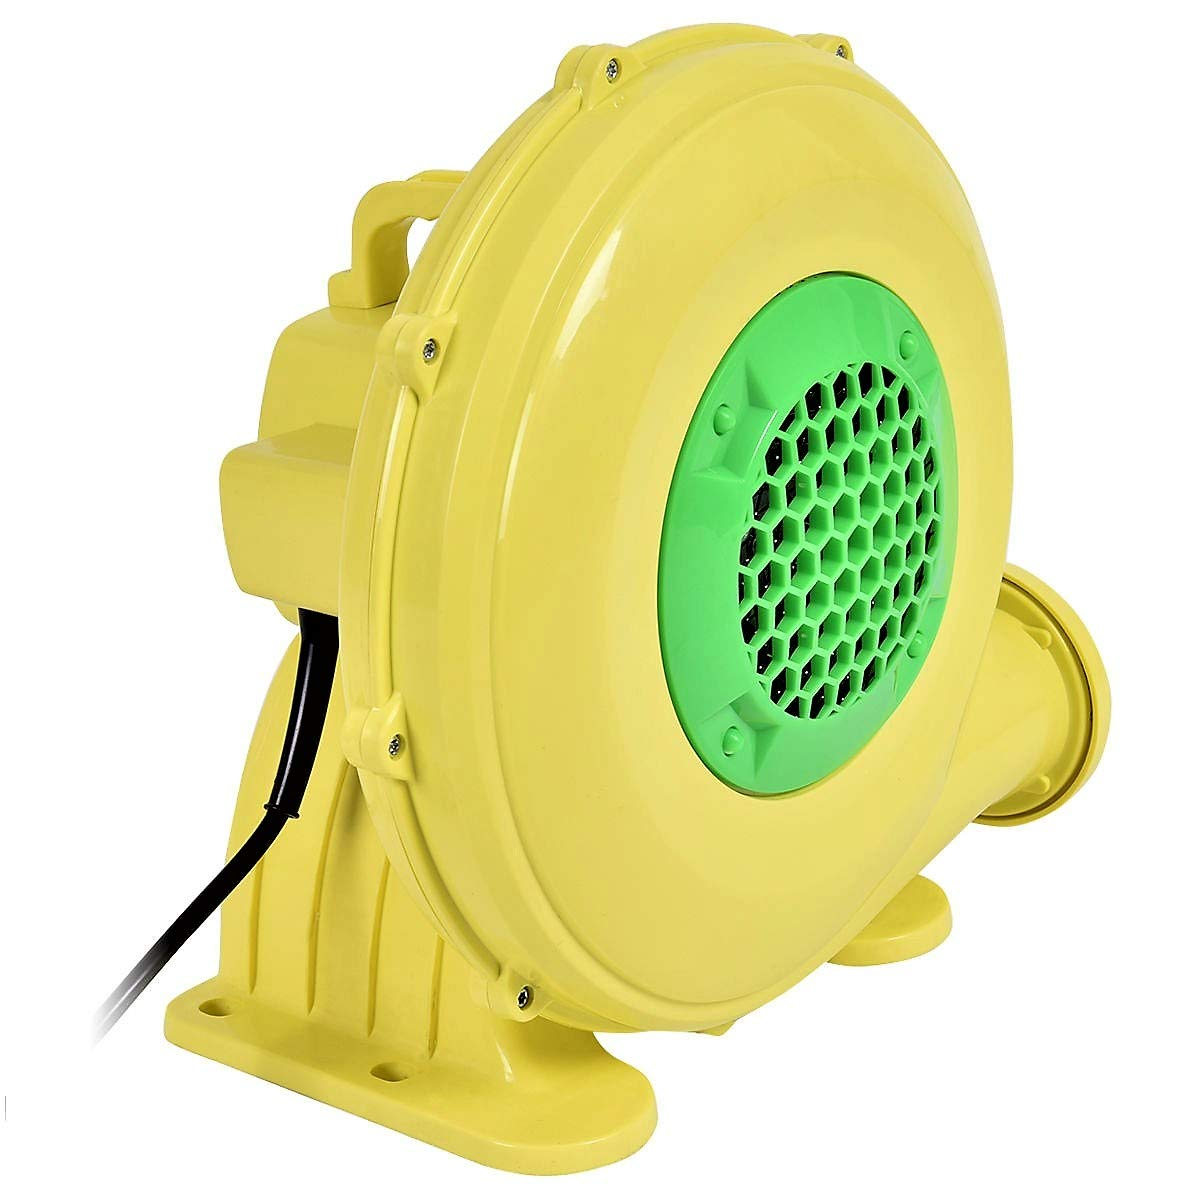 Lucky-gift - 480 W 0.64 HP Air Blower Pump Fan for Inflatable Bounce House - Air Blower Motor Compressor Bouncy Castle House - Balloon Blower Pump Electric - 480 Watts Blowing Yard Top-Mounted Handle by Lucky-gift